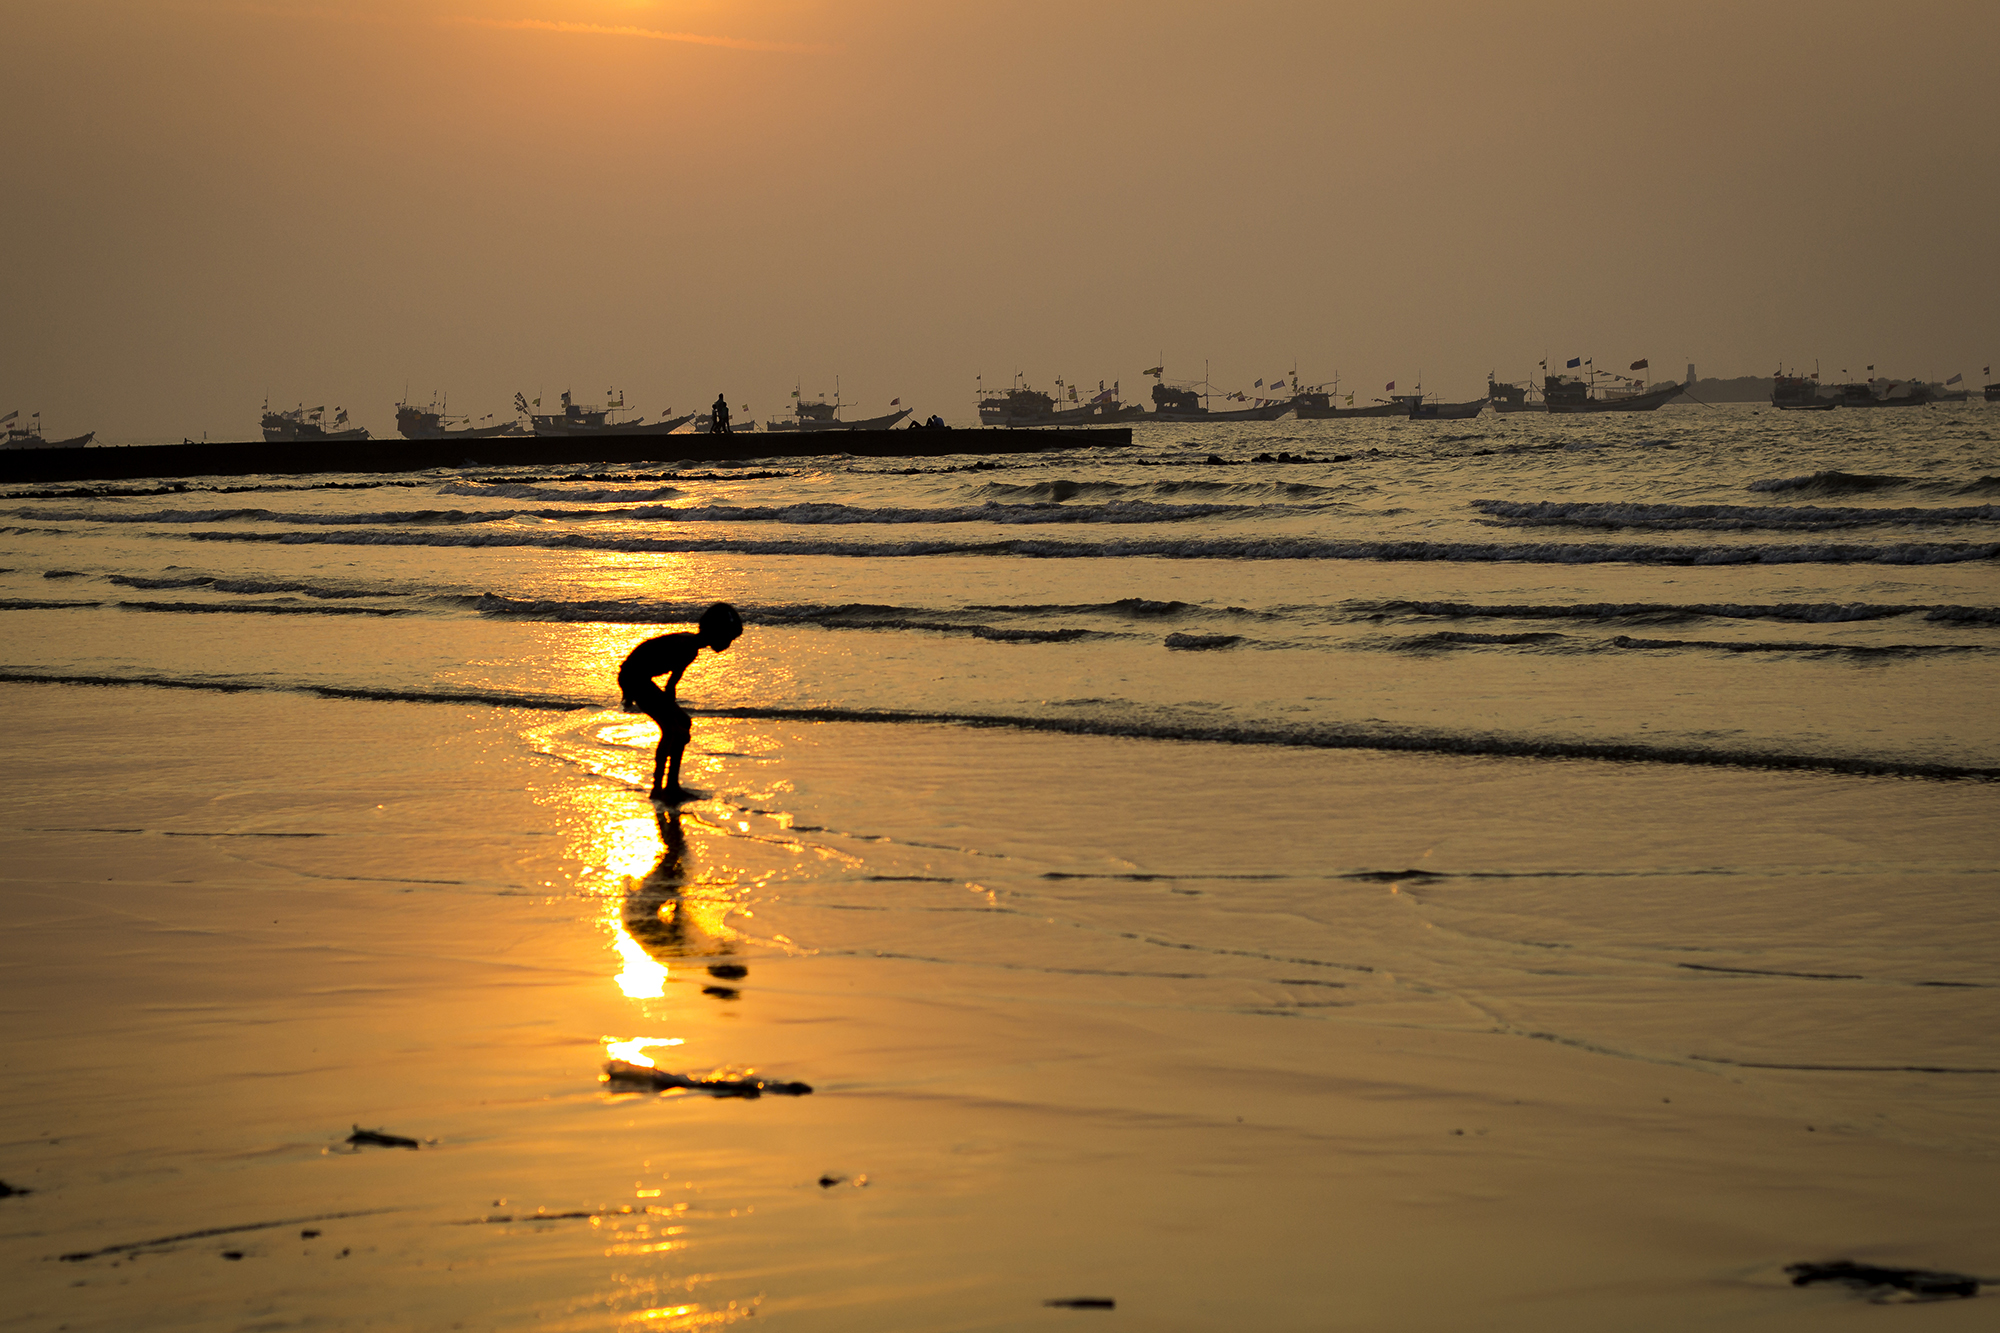 This image was taken at Gorai Beach - Mumbai. I was just roaming around and saw this kid playing in sea searching for some shells in the sand. He was opposite to the sun giving this nice silhouette effect.